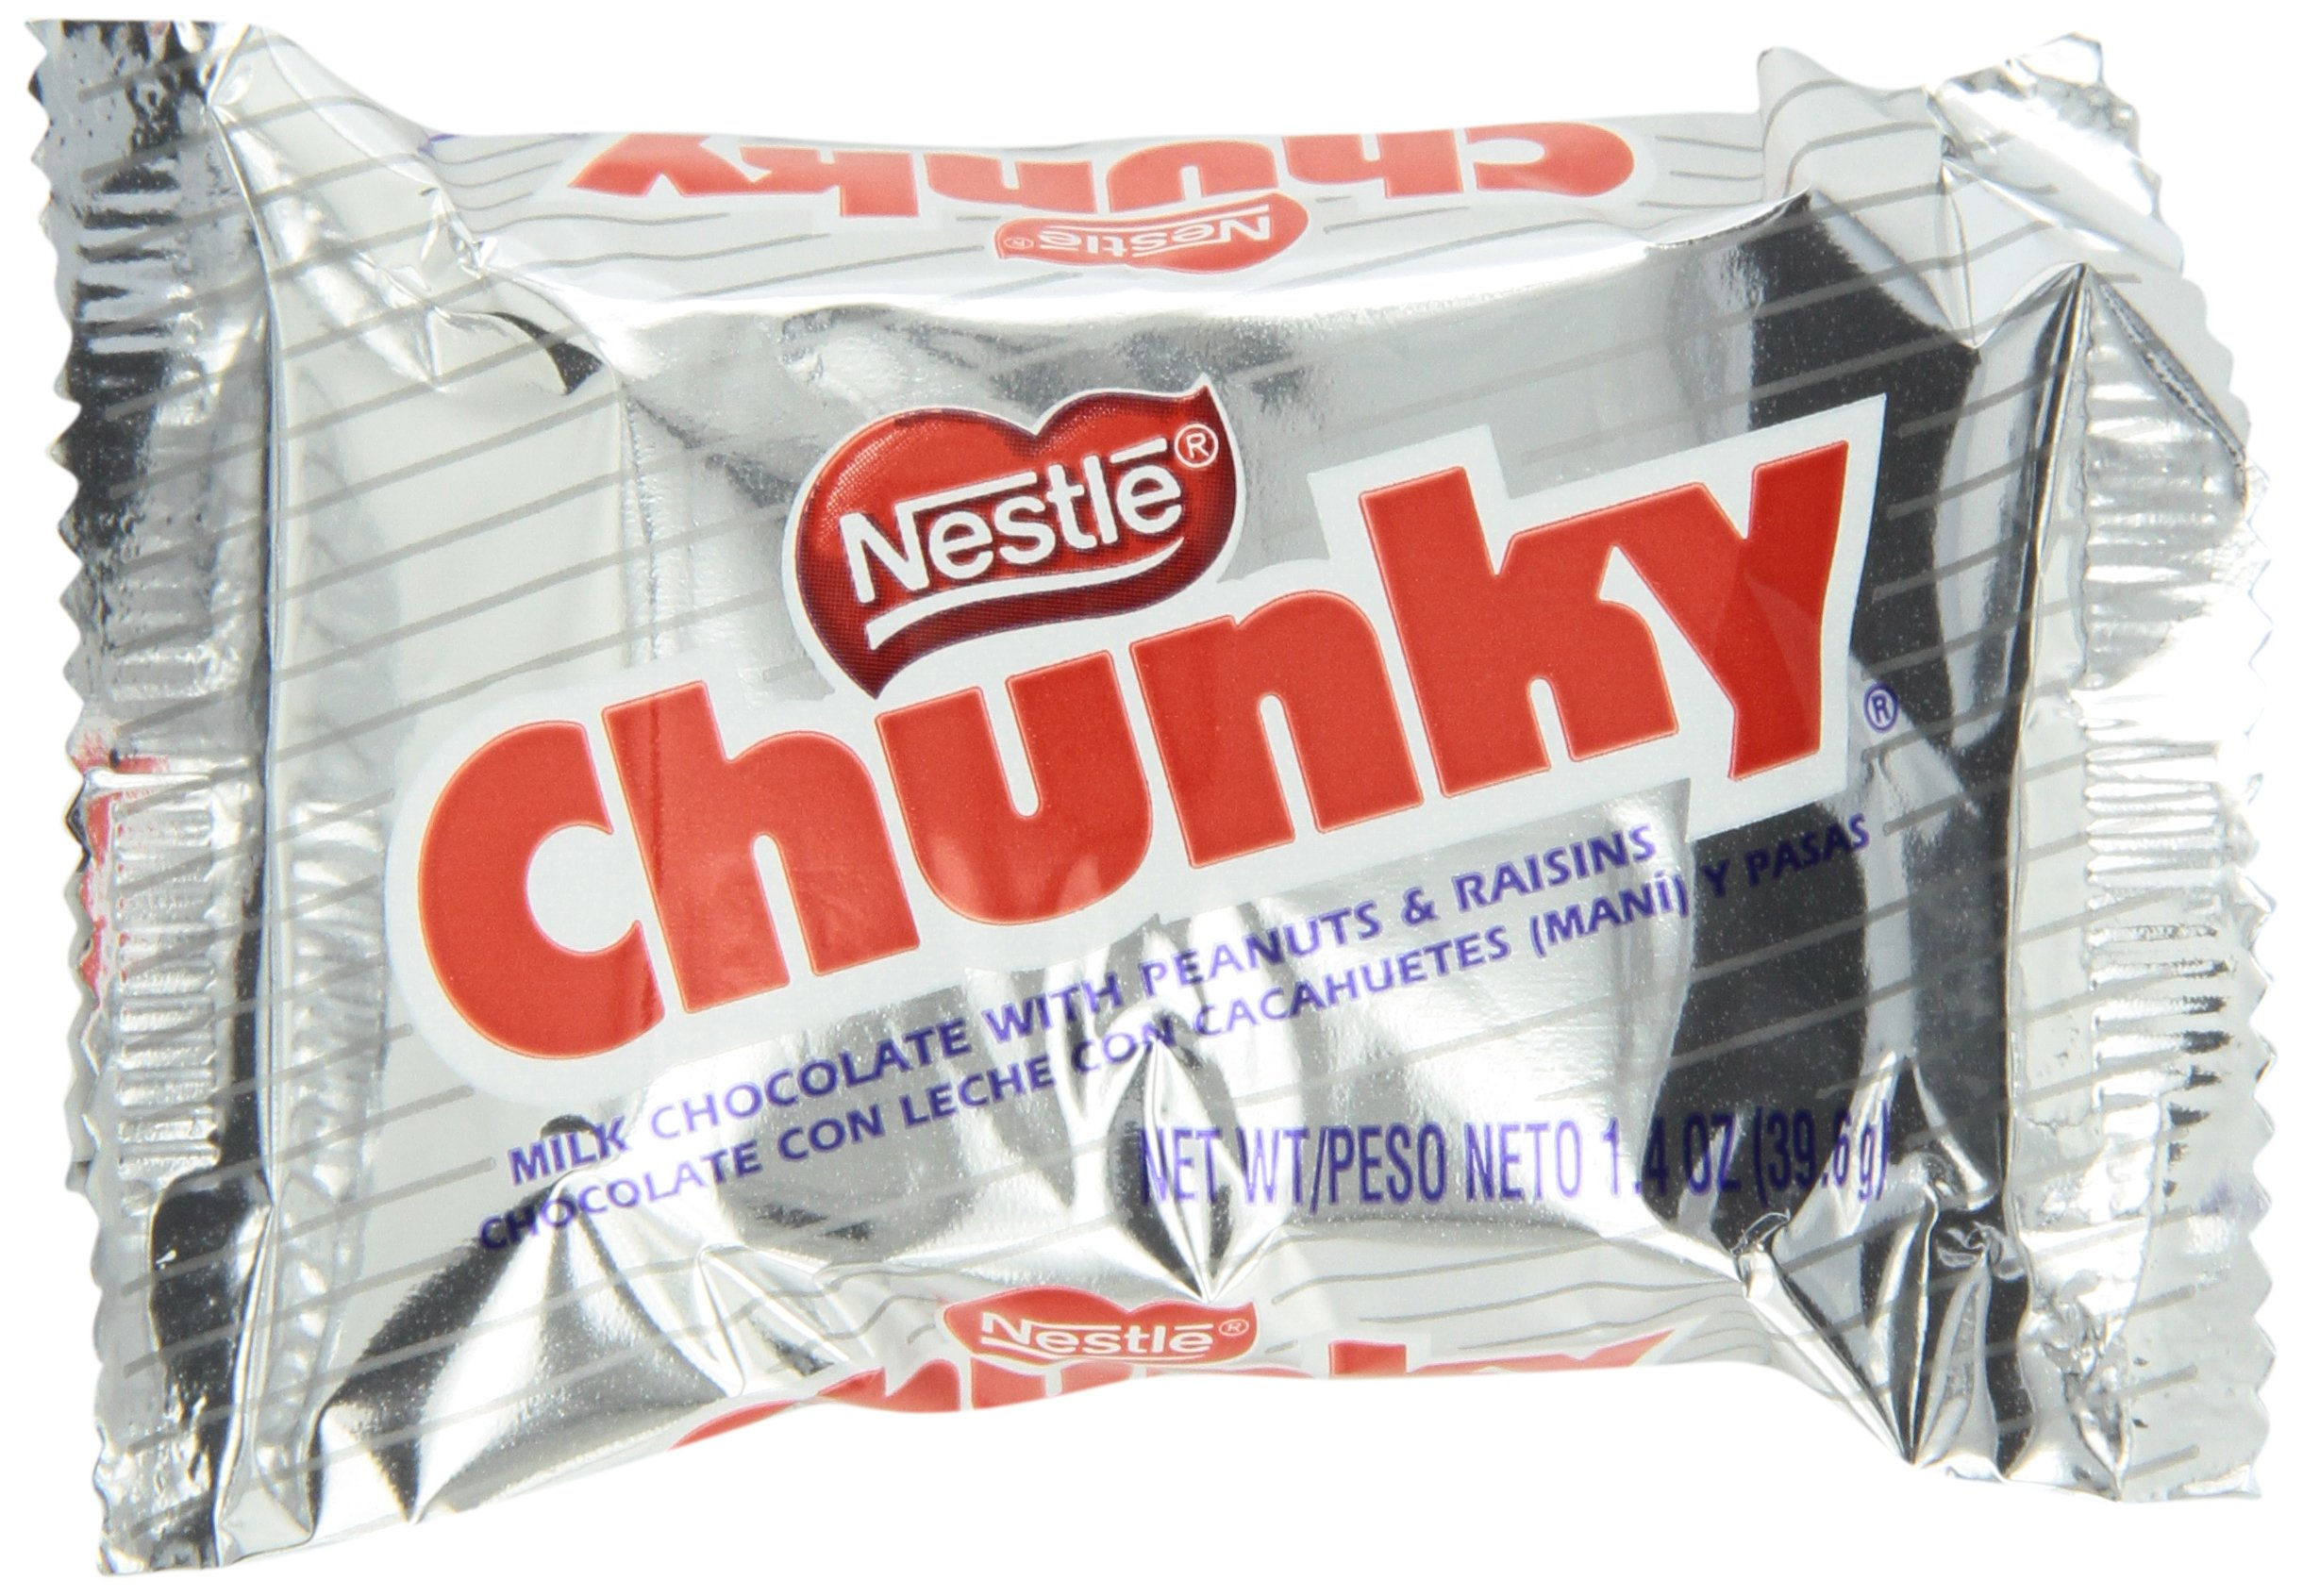 Nestle Chunky Chocolate Single Candy Bars, 1.4 Ounce (Pack of 24) by Chunky